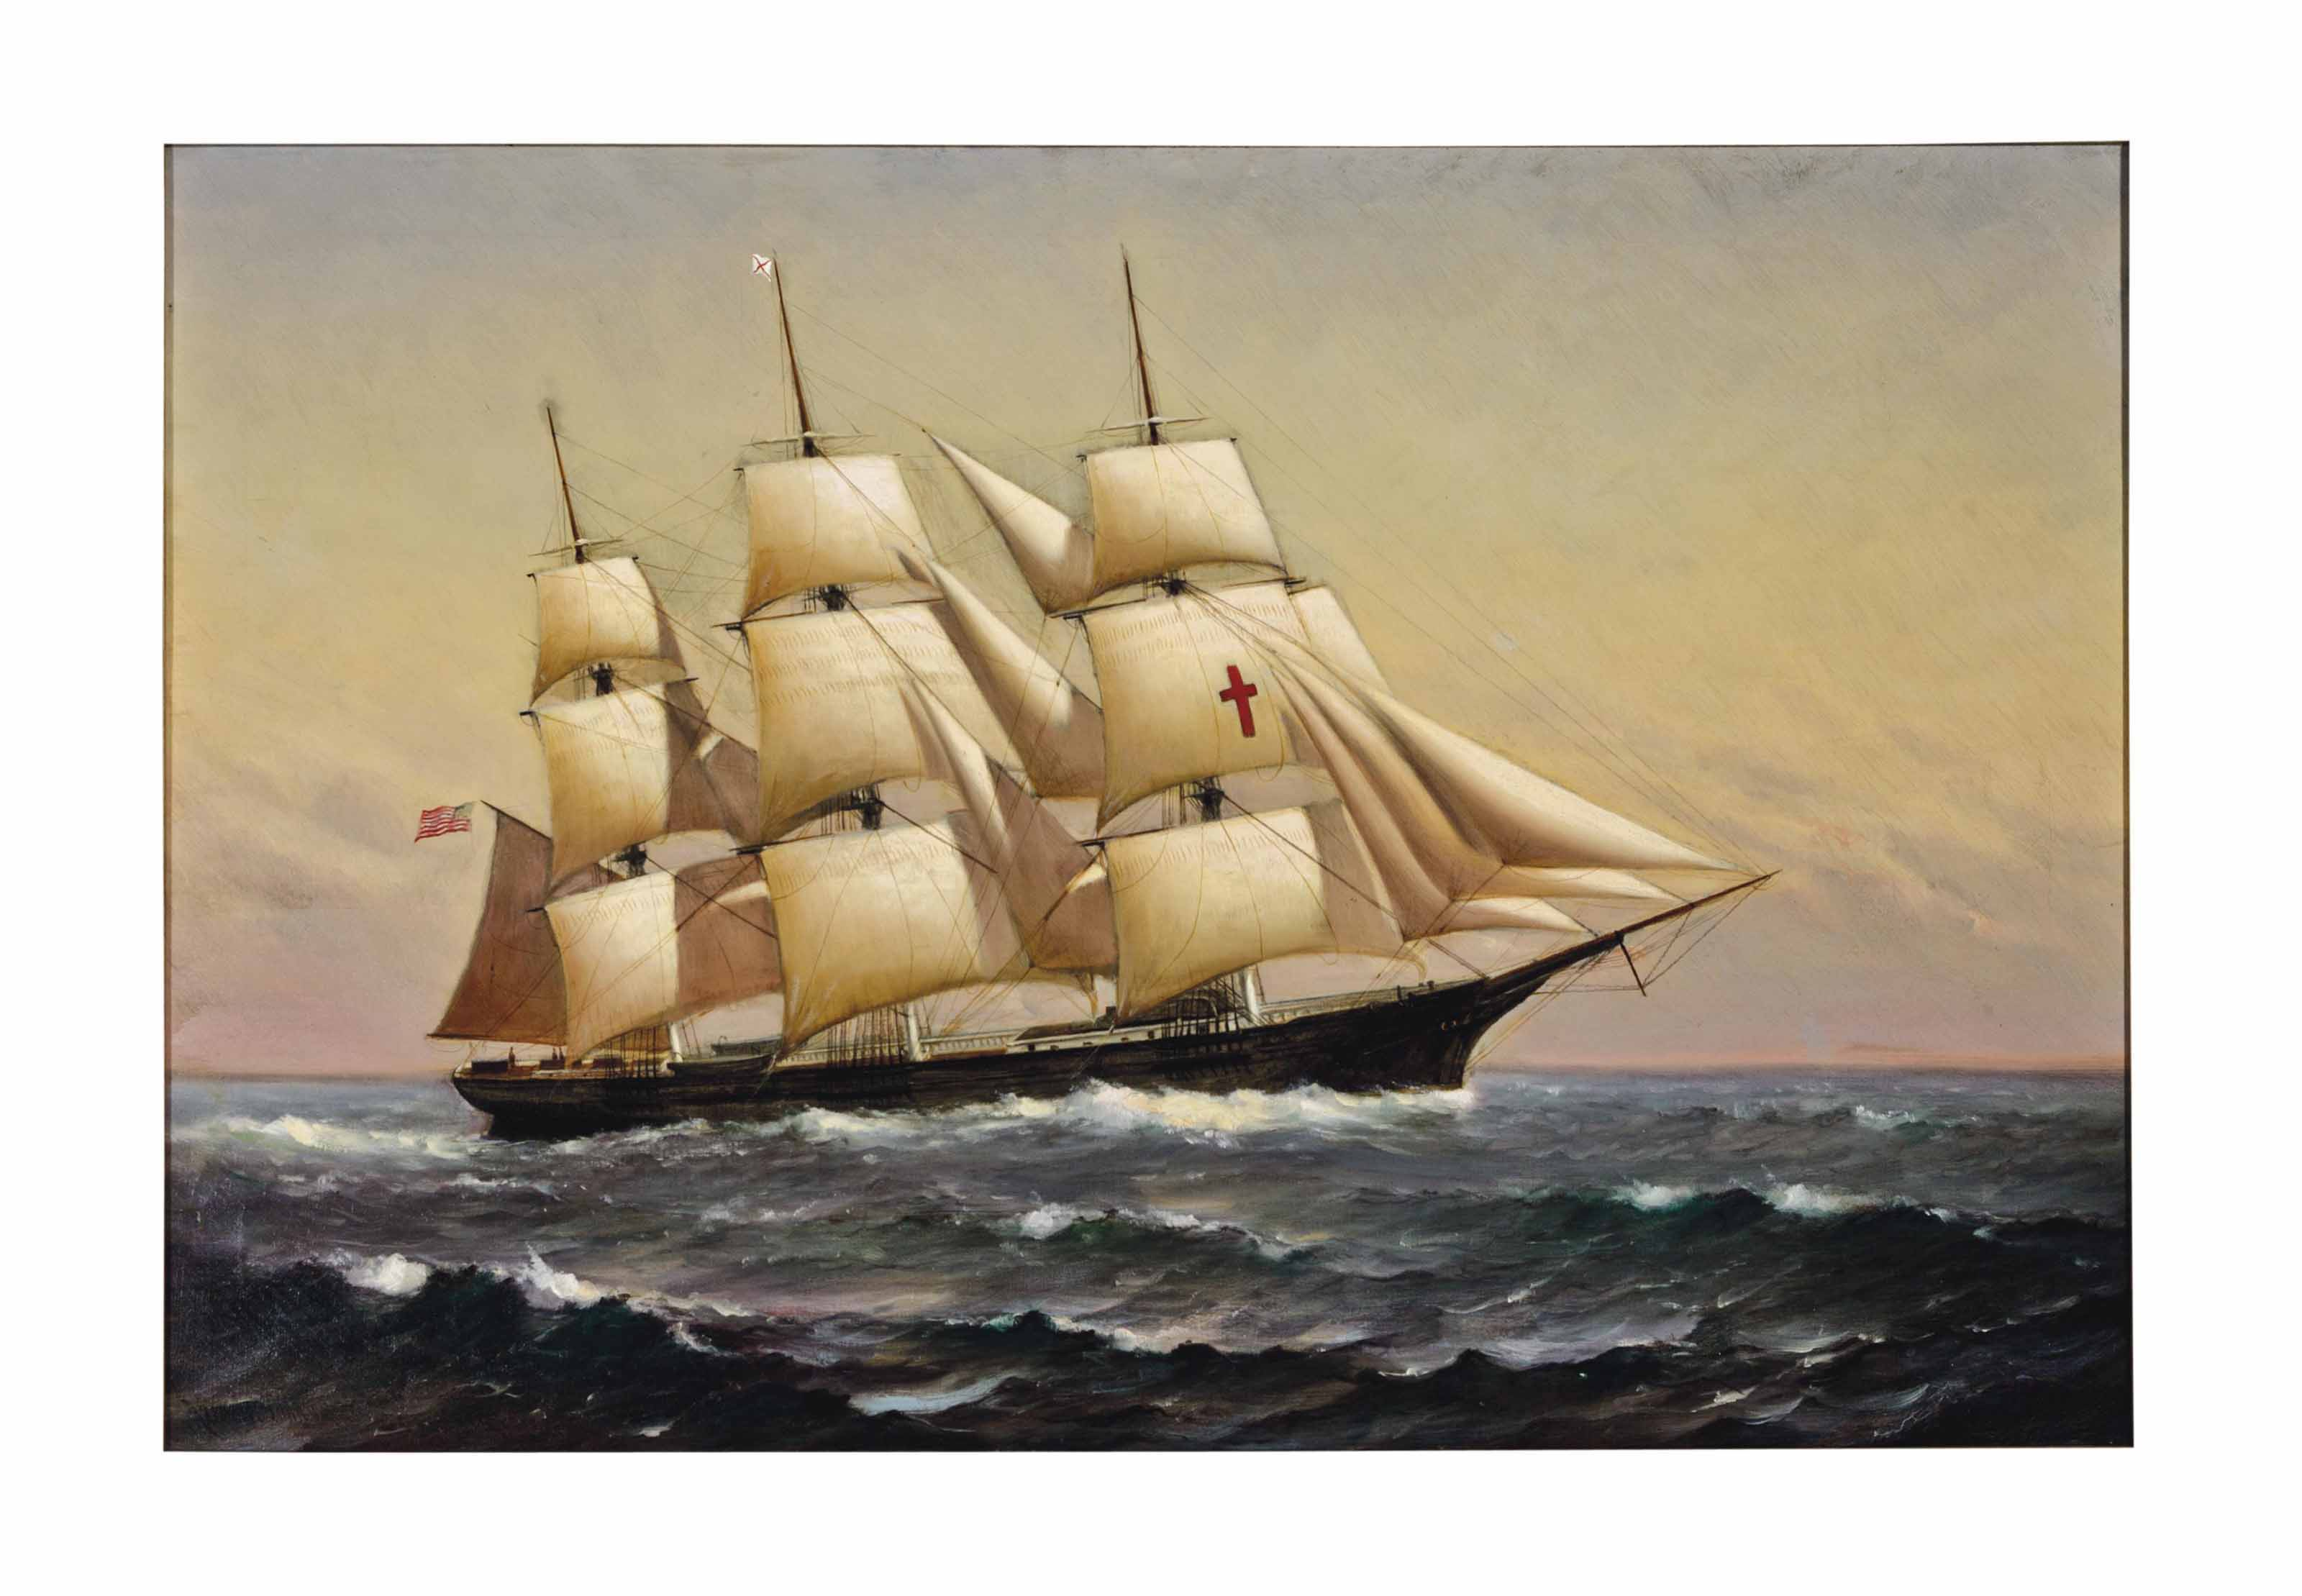 A three-masted schooner